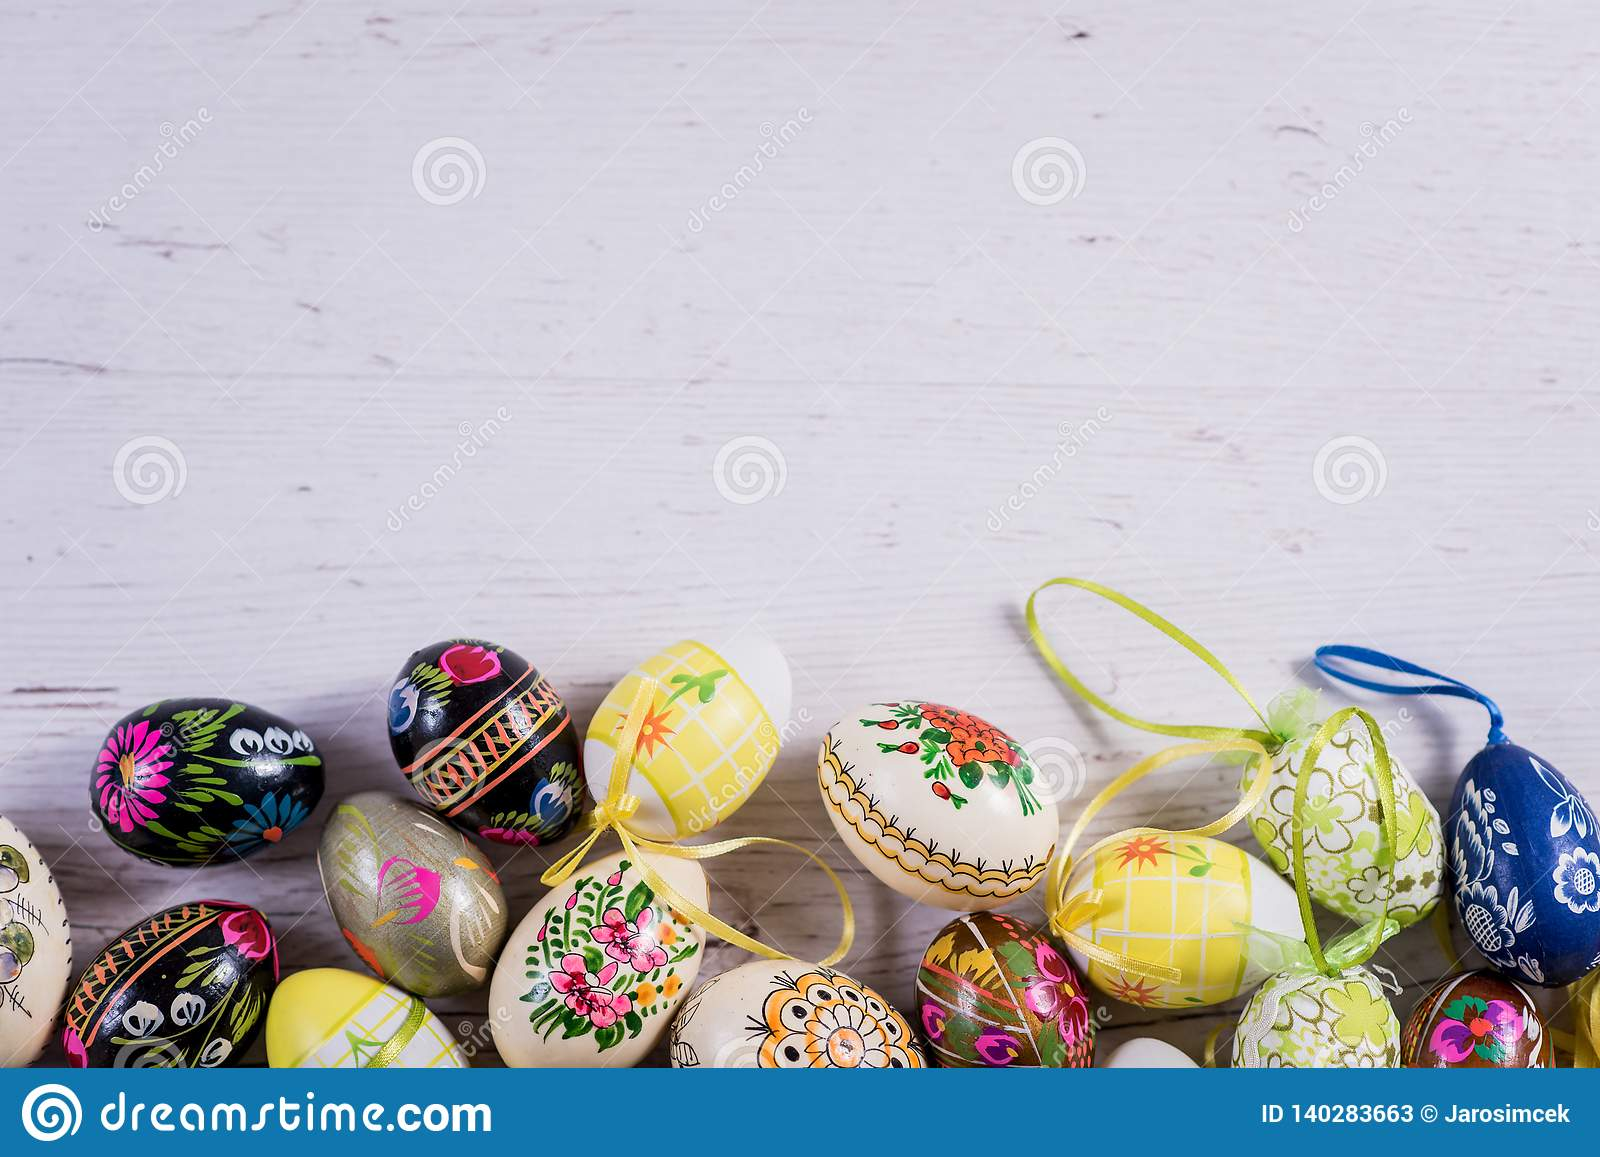 Multicolored spring tulips and Easter eggs with decorations